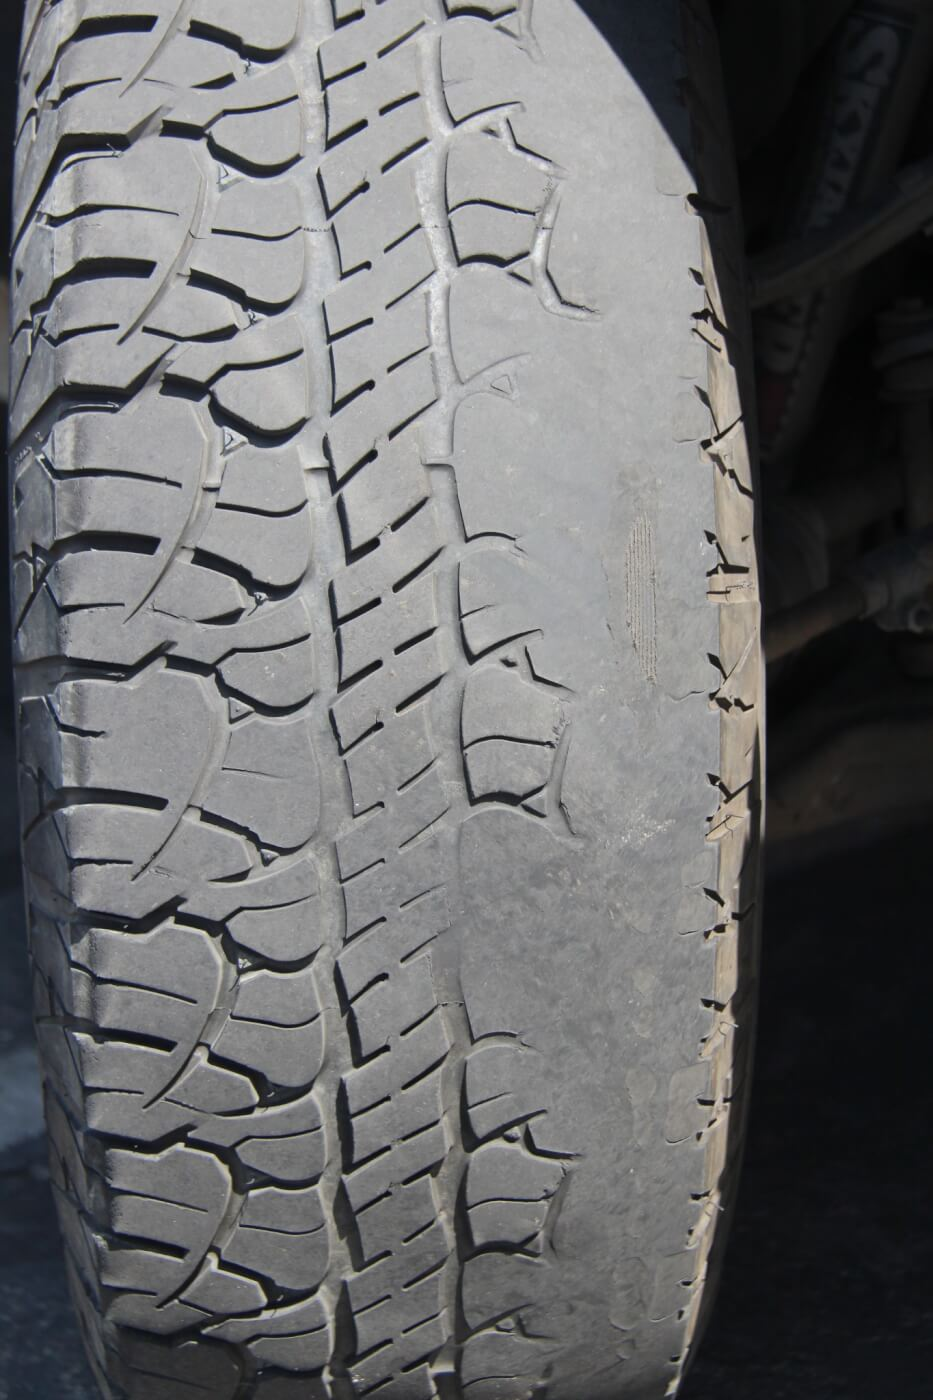 Besides providing poor steering response, a worn front end can and will cause excessive tire wear. GM's independent front suspension system is known for wearing the inside edge of tires, and worn components accelerate this greatly.